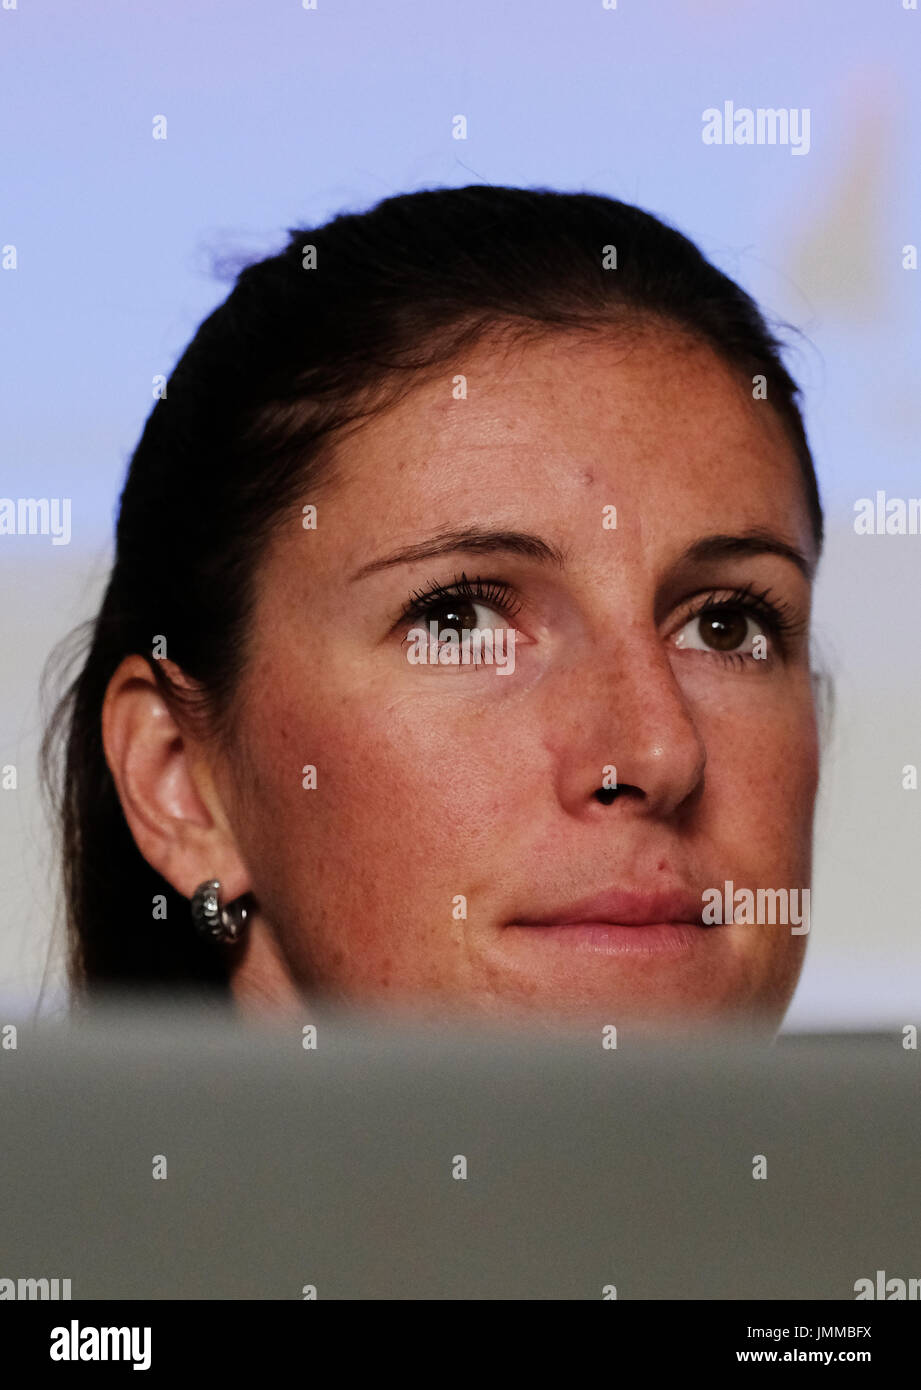 Prague, Czech Republic. 28th July, 2017. Czech athlete Zuzana Hejnova attends the press conference prior to the IAAF World Championships London 2017, in Prague, Czech Republic, on July 28, 2017. Credit: Roman Vondrous/CTK Photo/Alamy Live News - Stock Image